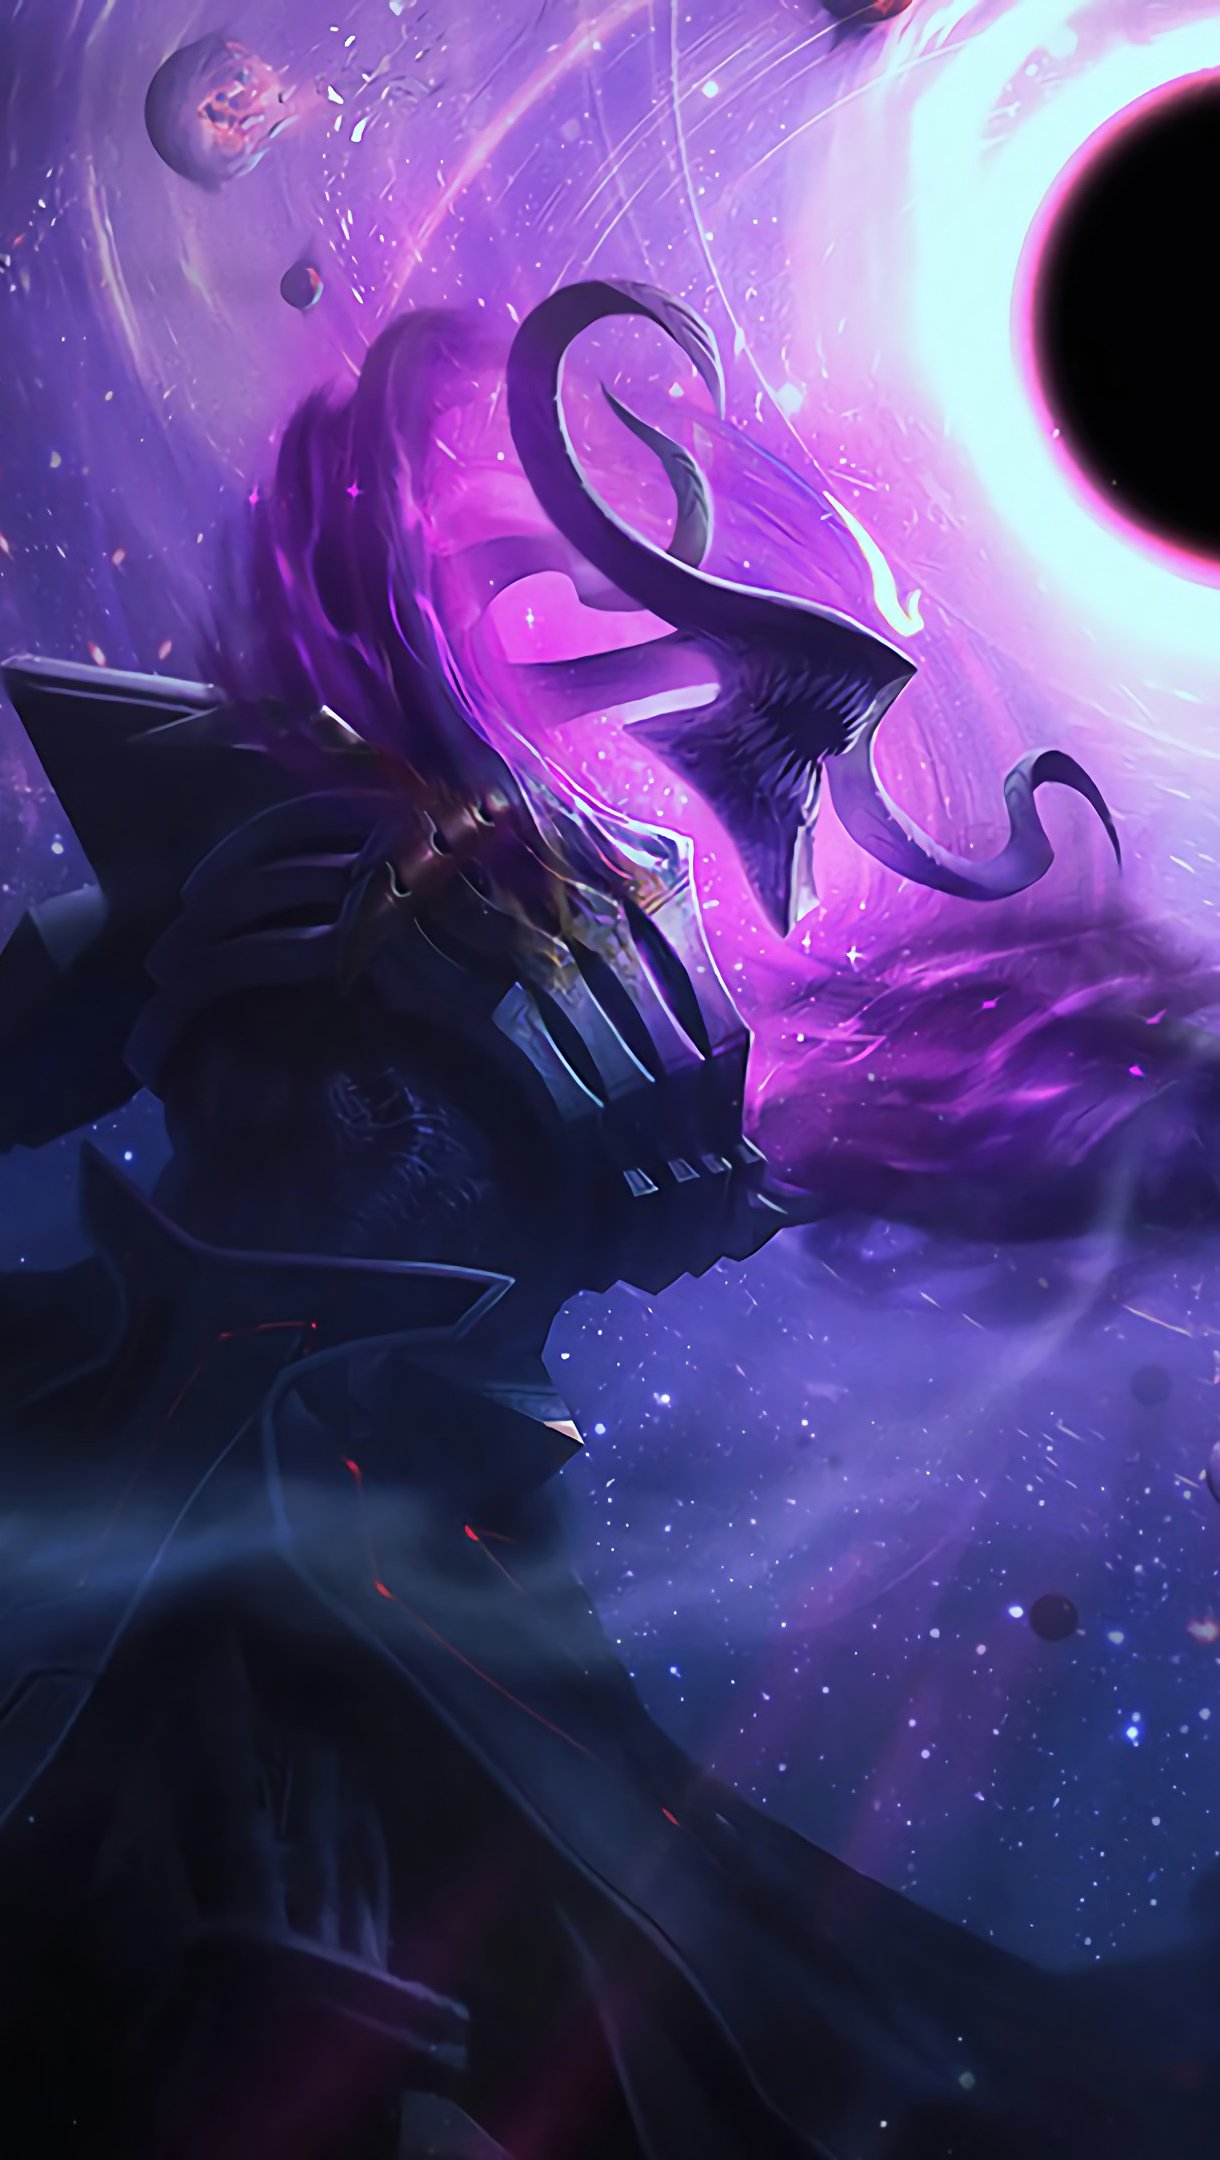 Wallpaper Dark Star Thresh League of Legends Vertical